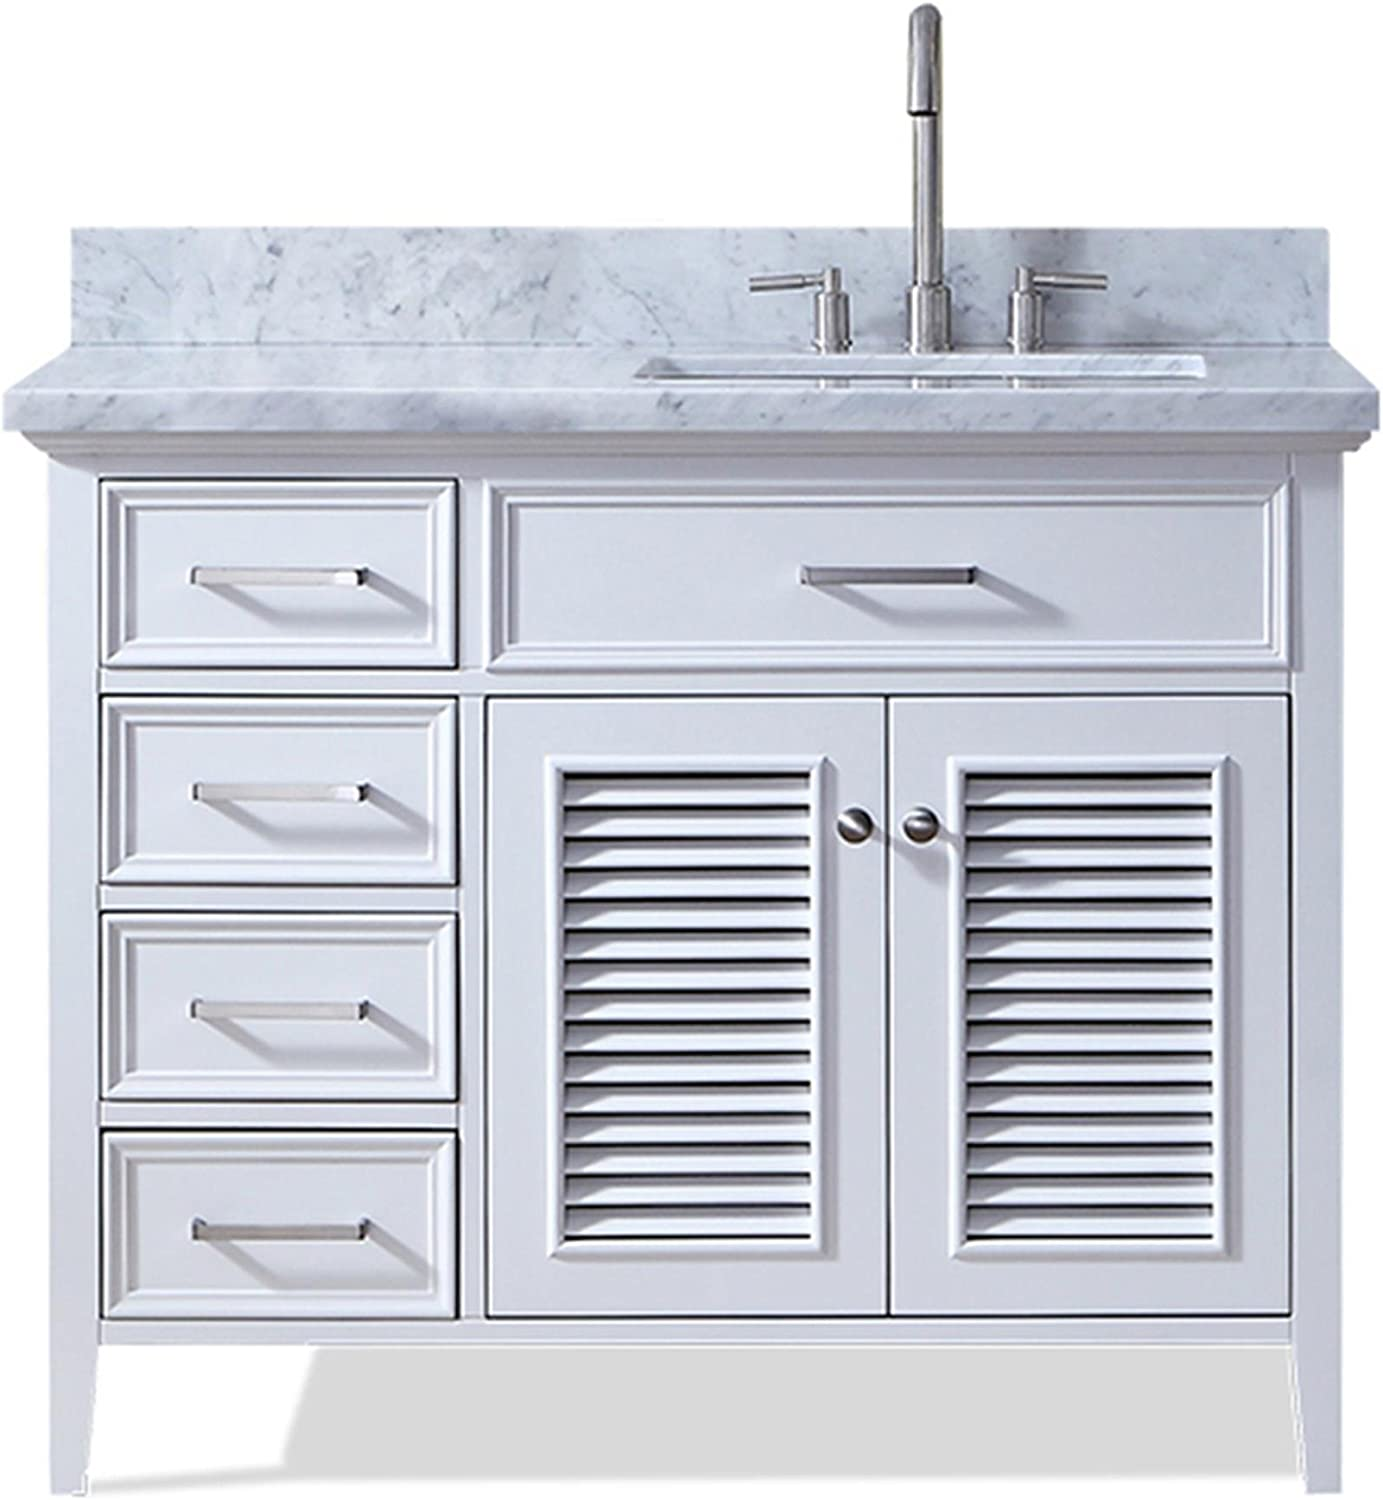 ARIEL Kensington D043S-R-VO-WHT 43 Inch Right Offset Single Rectangular Sink White Bathroom Vanity Cabinet with Carrara White Marble Countertop